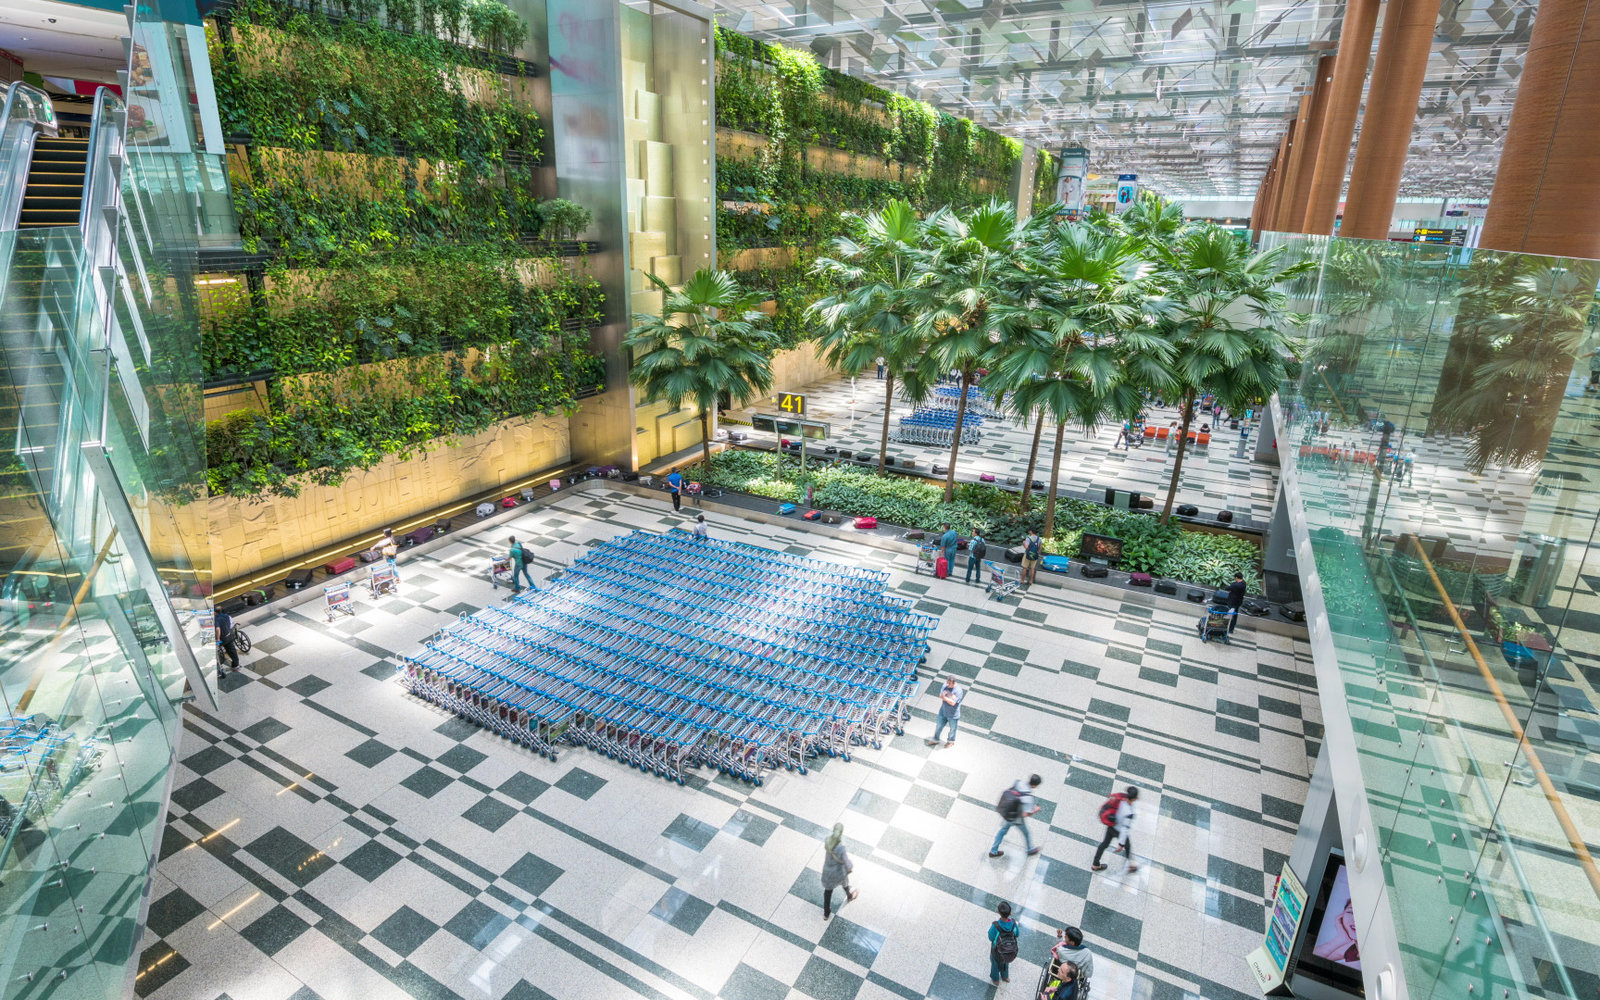 Singapore Changi Airport Guide & Reviews - The Guide to